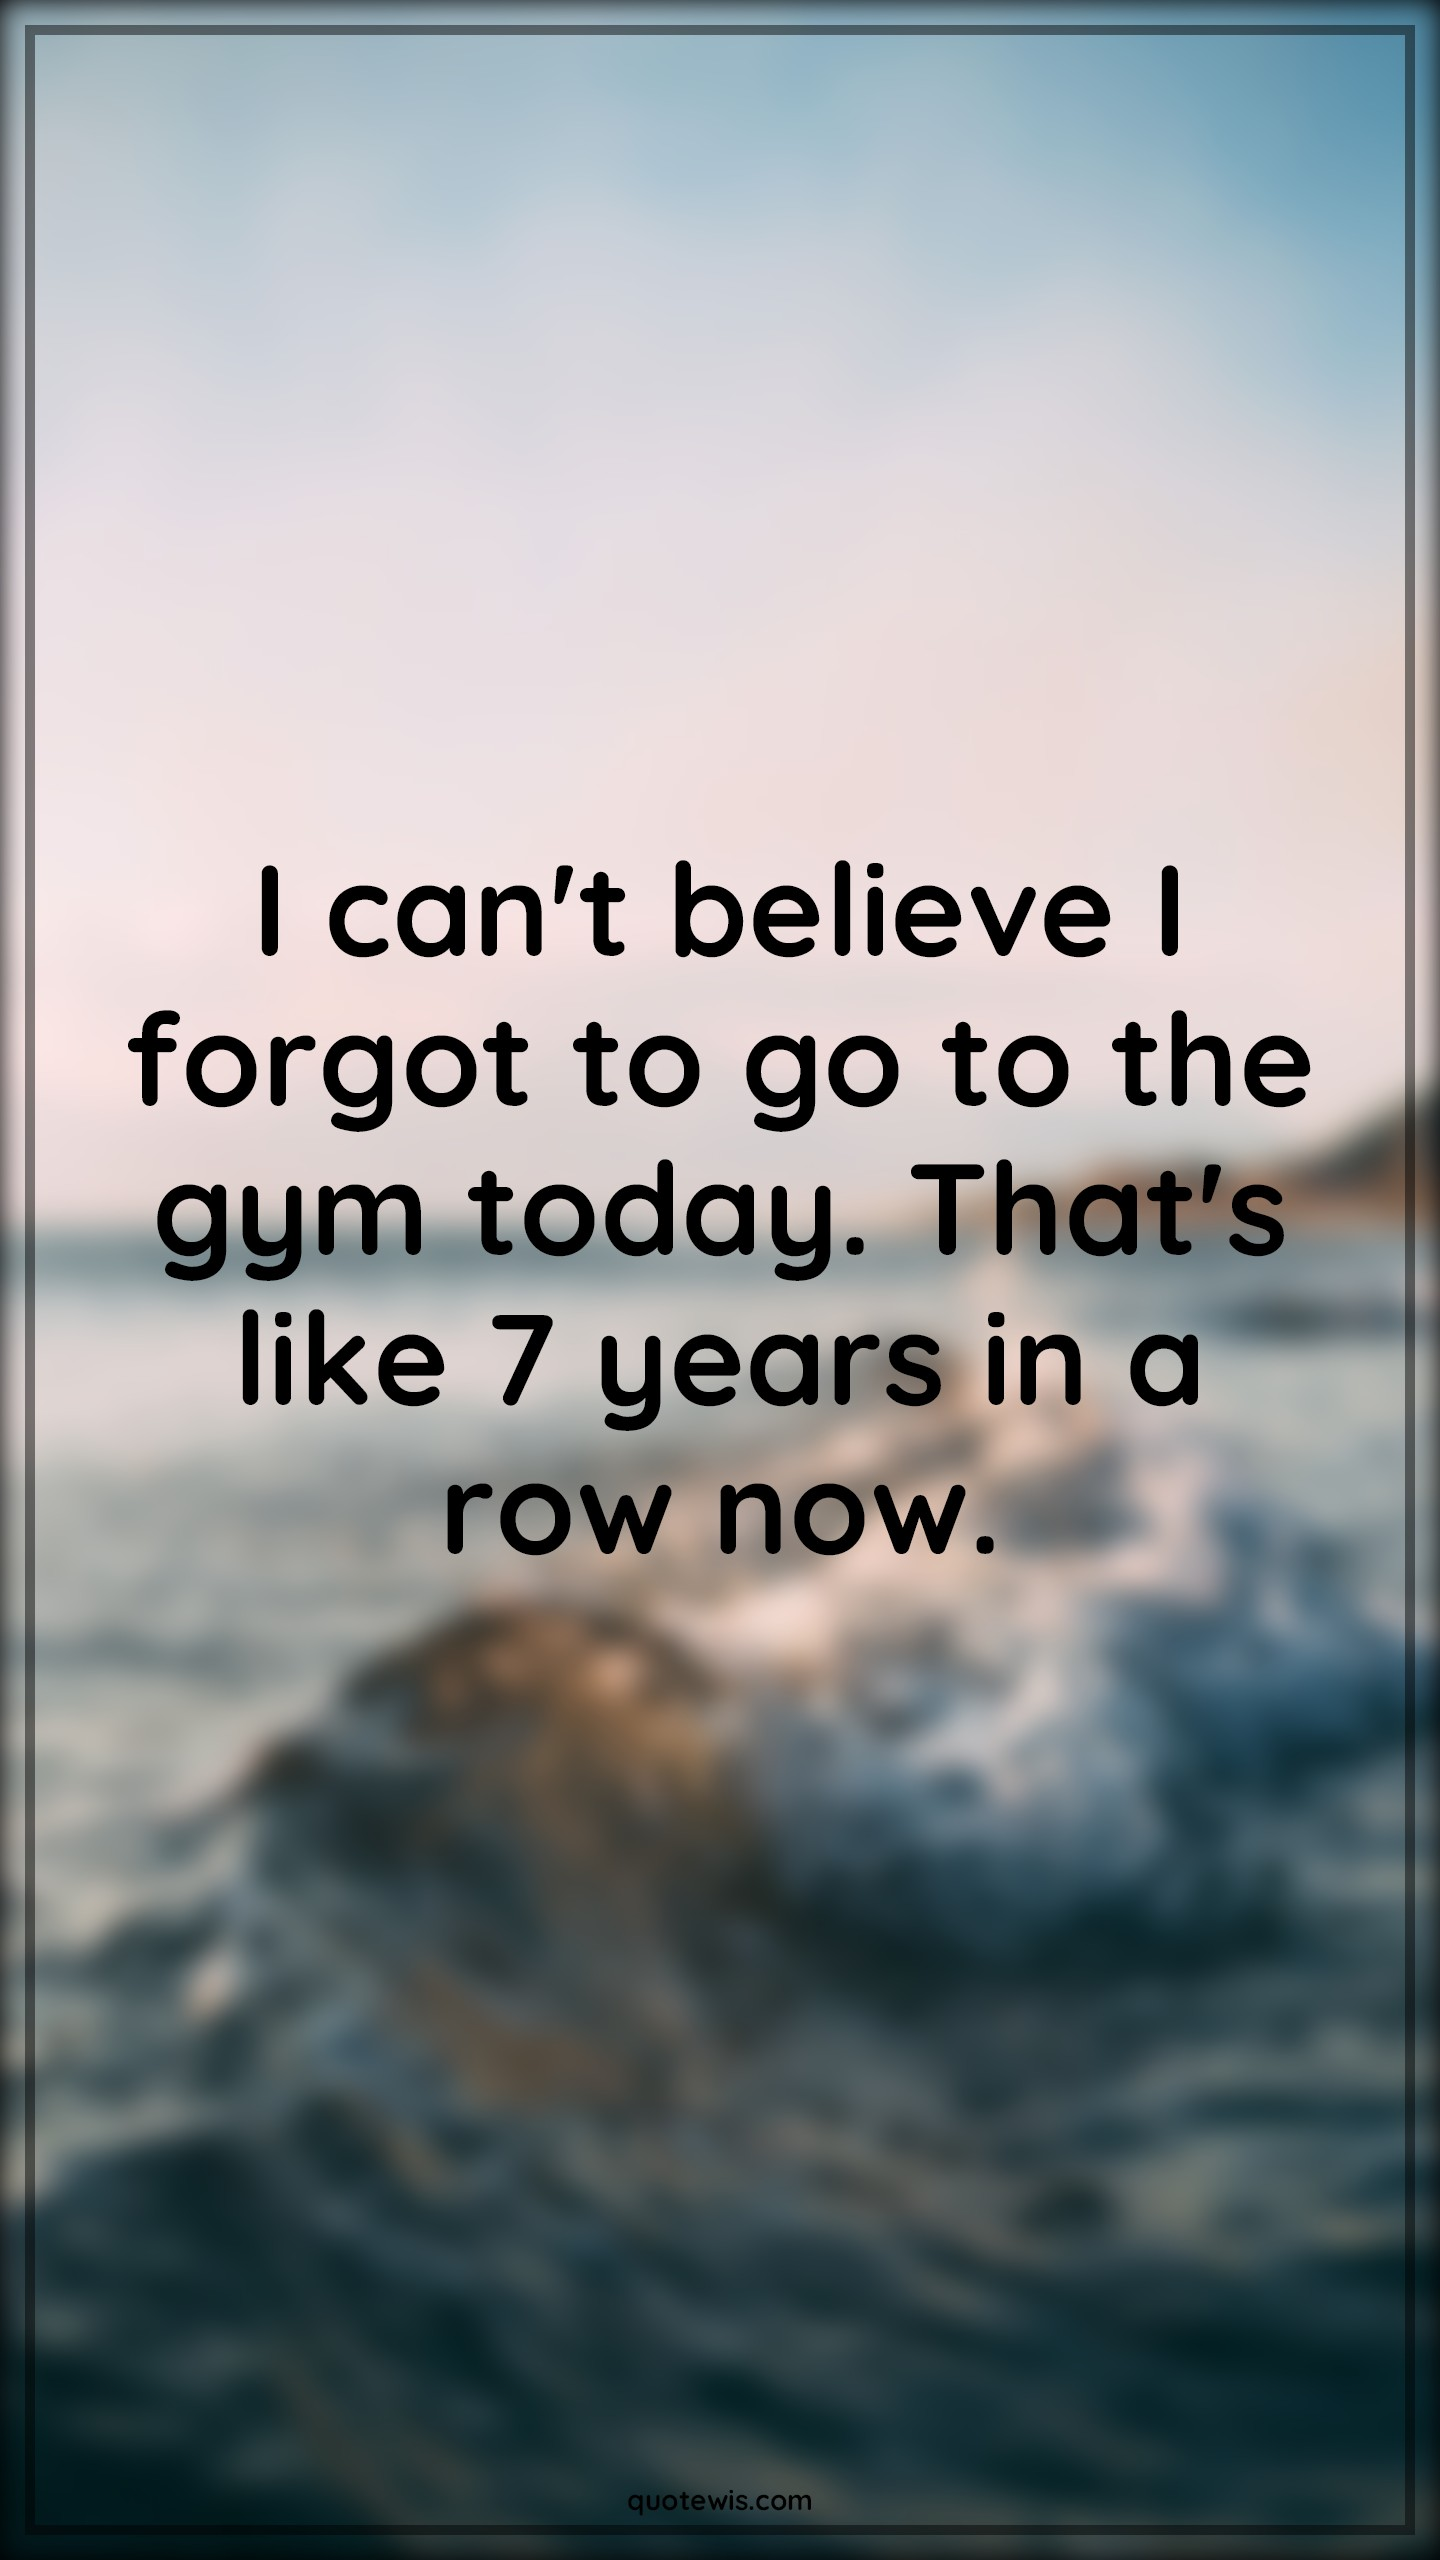 I can't believe I forgot to go to the gym today. That's like 7 years in a row now.